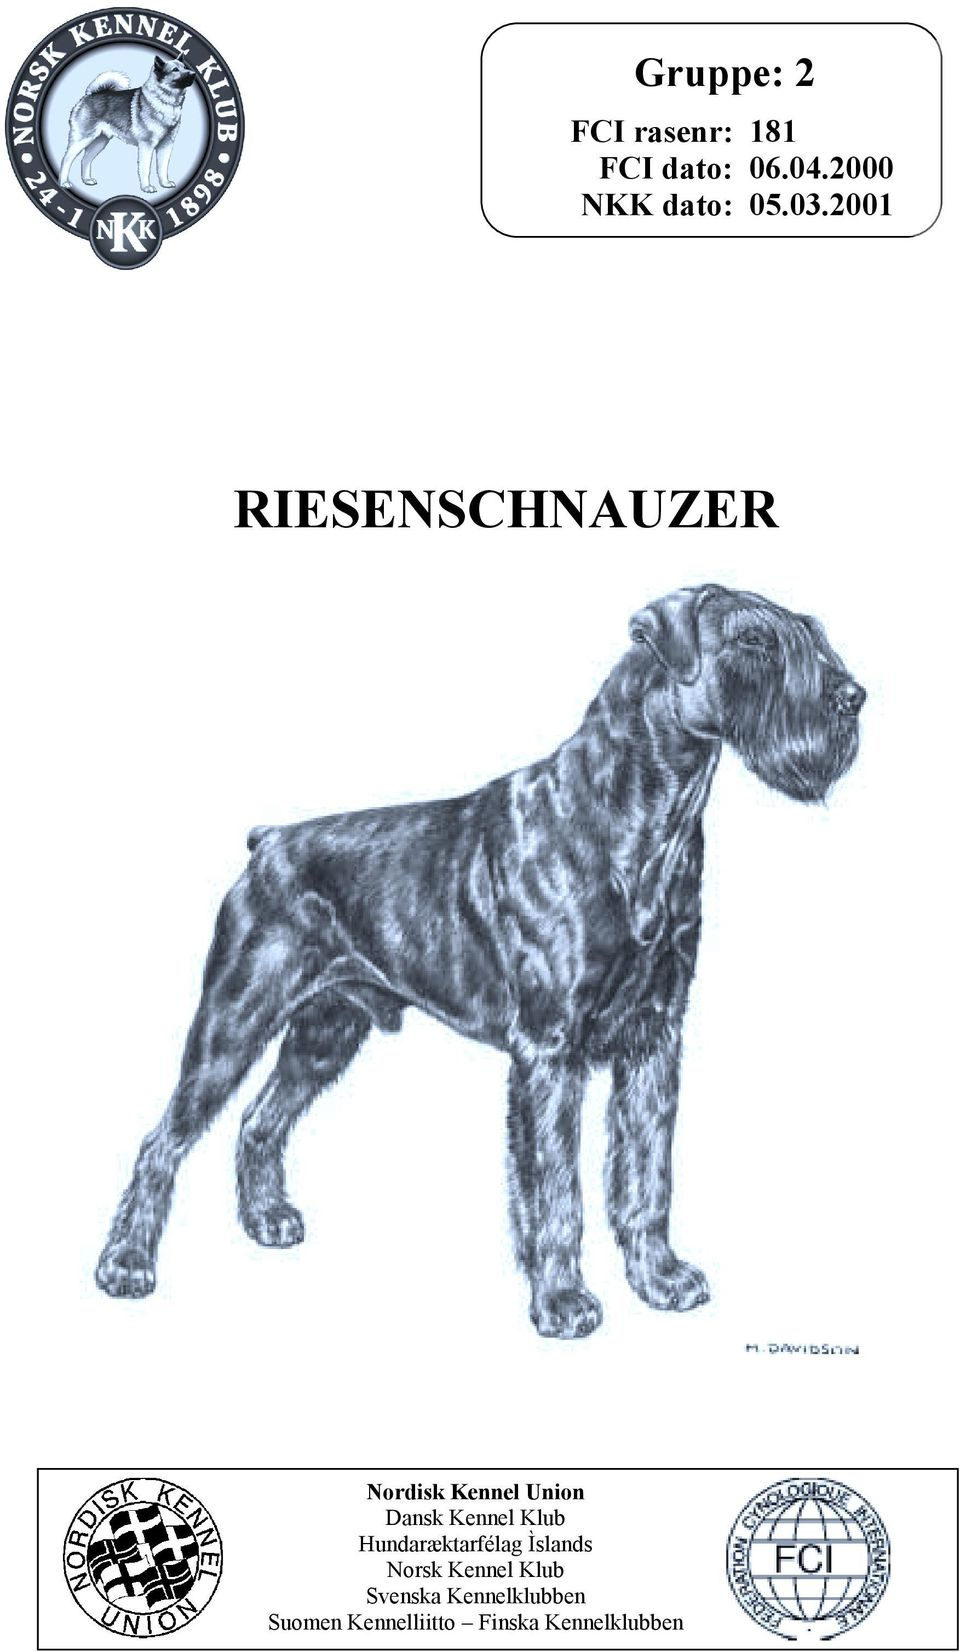 2001 RIESENSCHNAUZER Nordisk Kennel Union Dansk Kennel